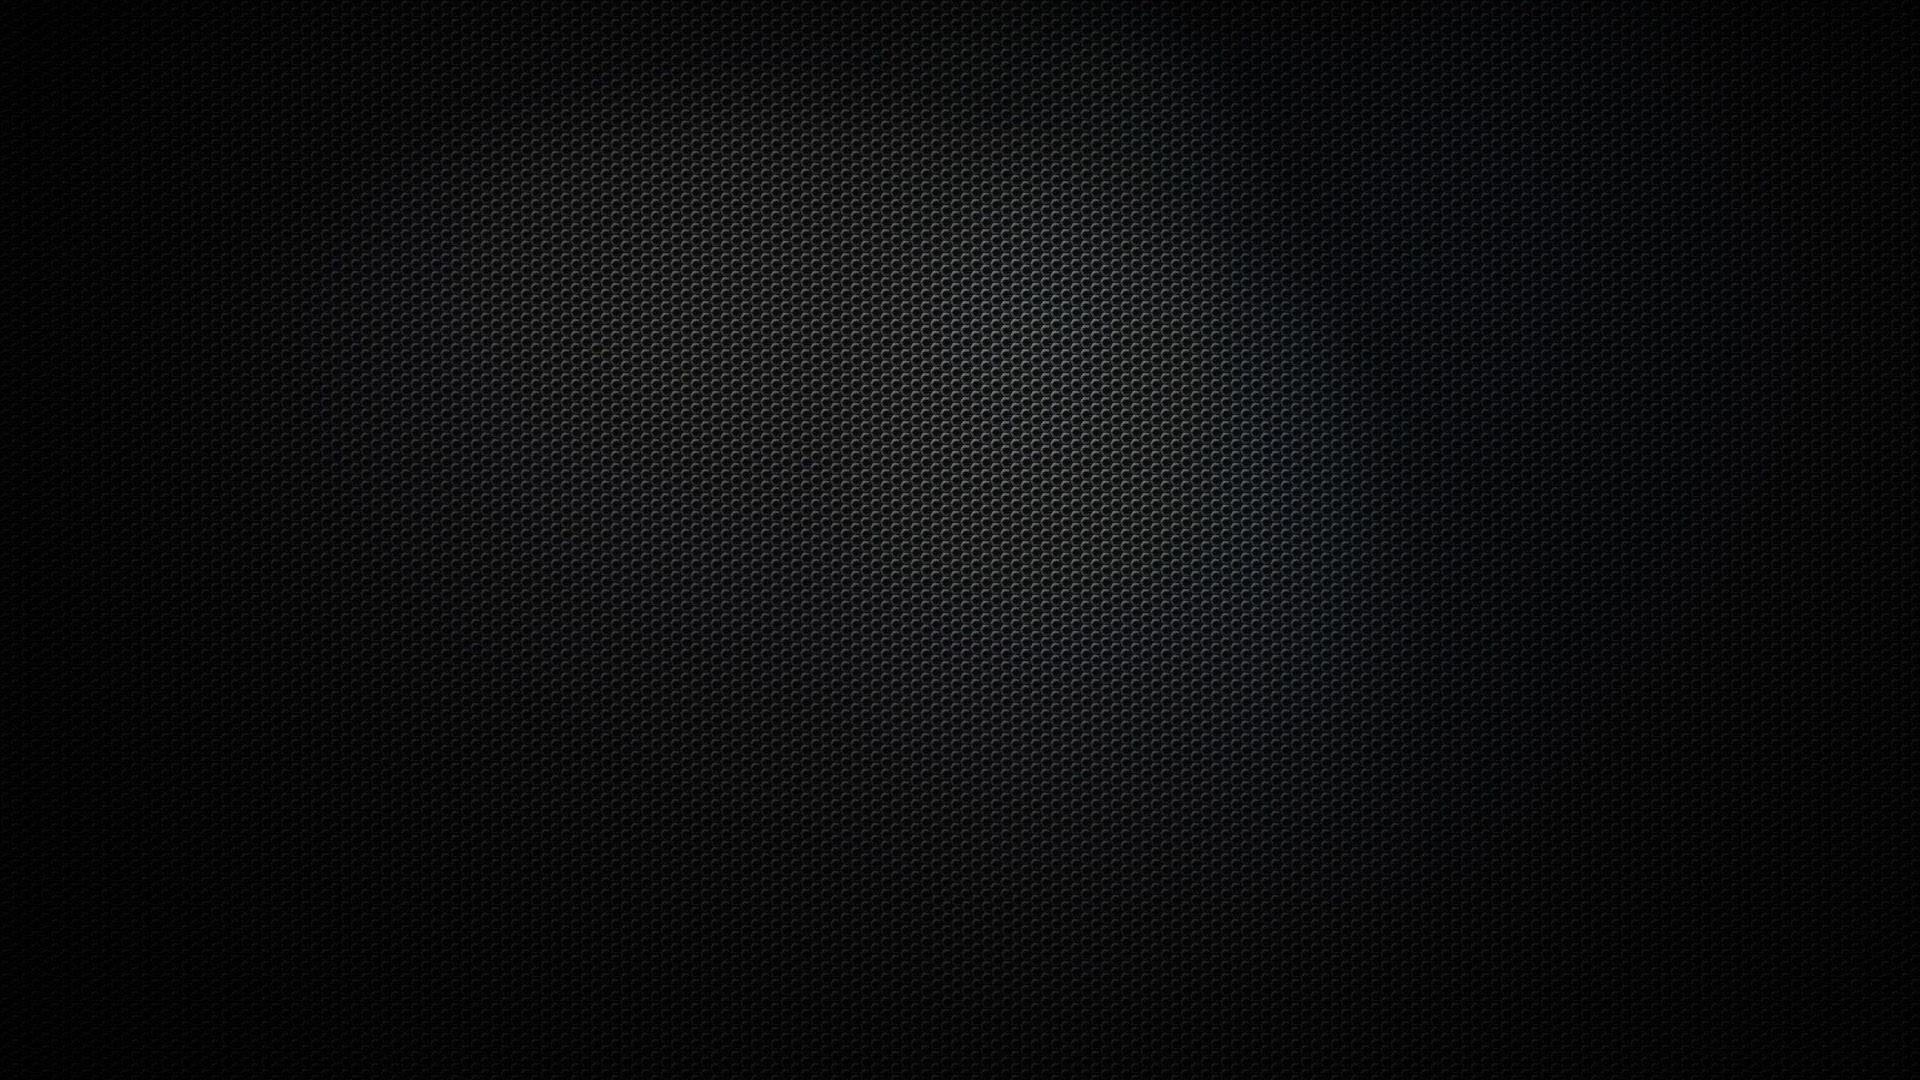 1920x1080 Black Background Wallpapers HD #7035149